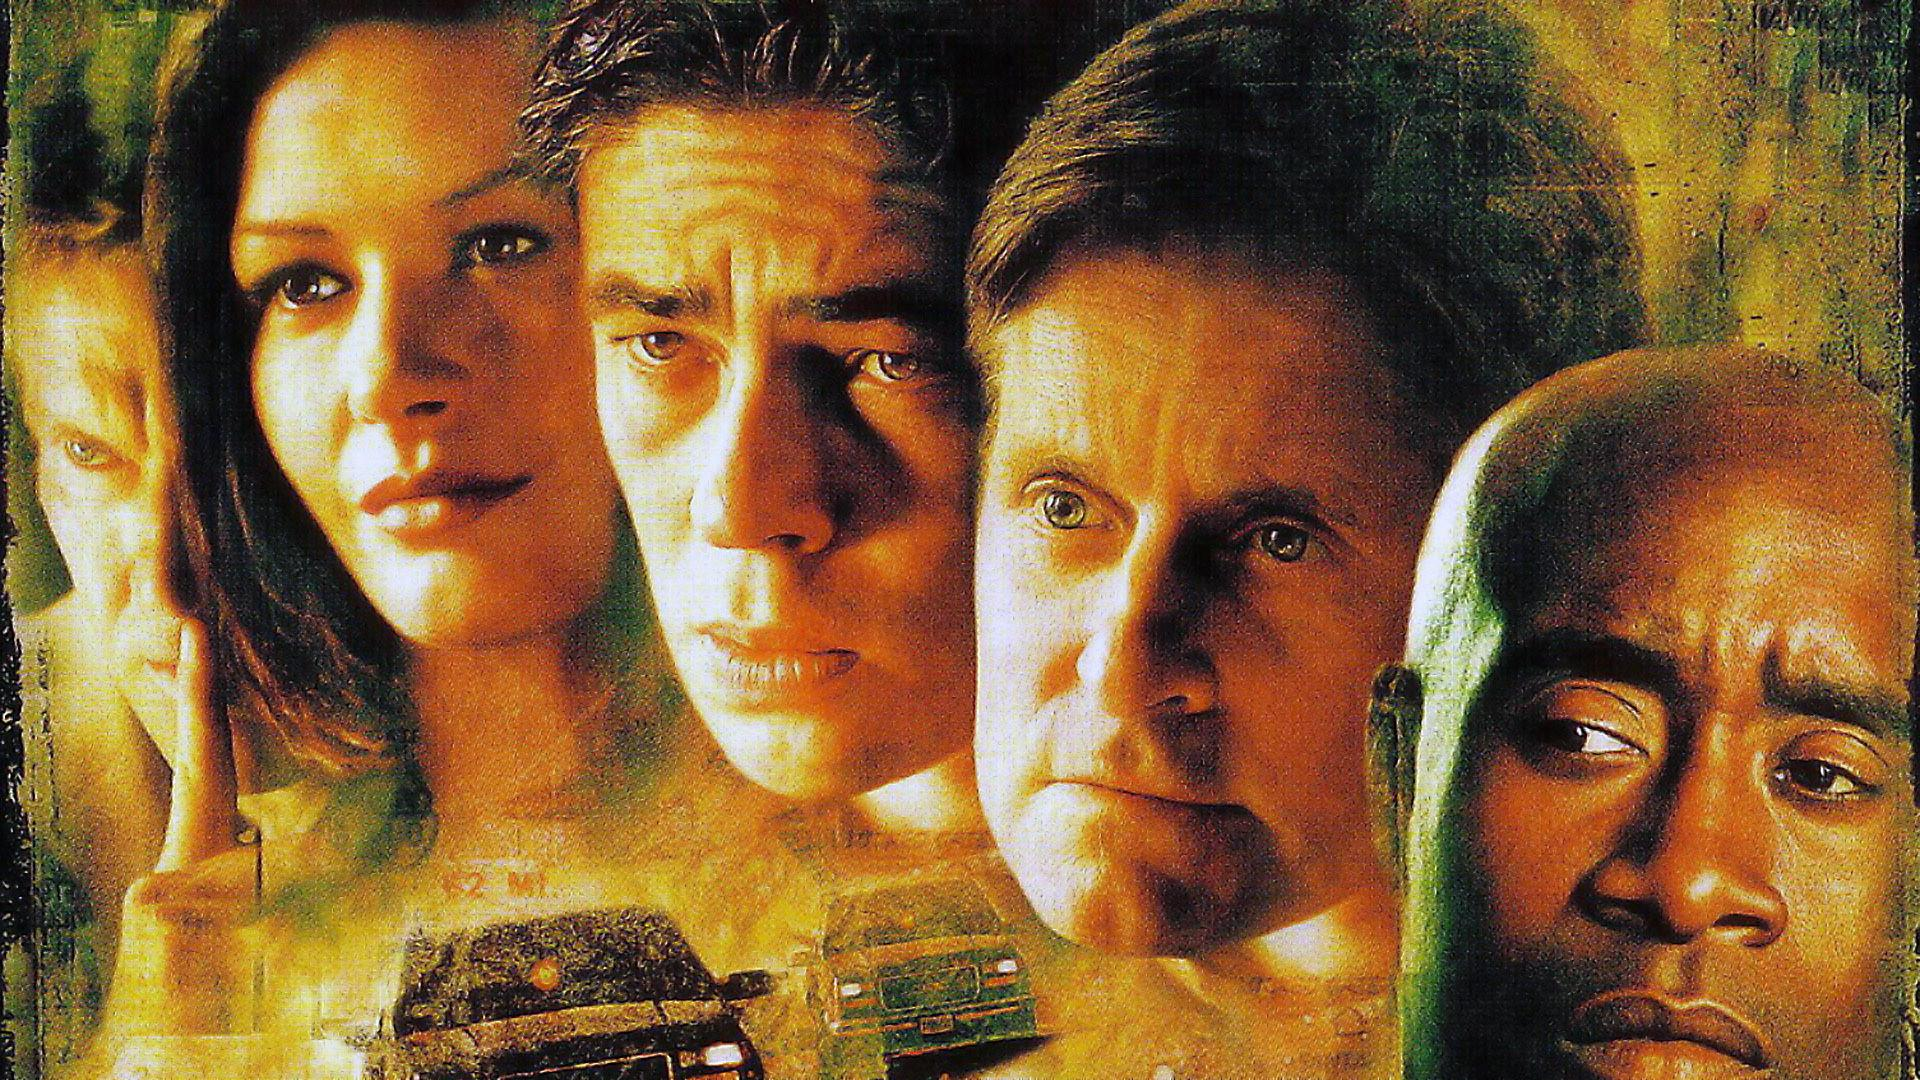 a review of traffic a 2000 american crime drama film by steven soderbergh Traffic is a 2000 american crime drama film directed by steven soderbergh and written by stephen gaghanit explores the illegal drug trade from a number of perspectives: users, enforcers, politicians, and traffickers.